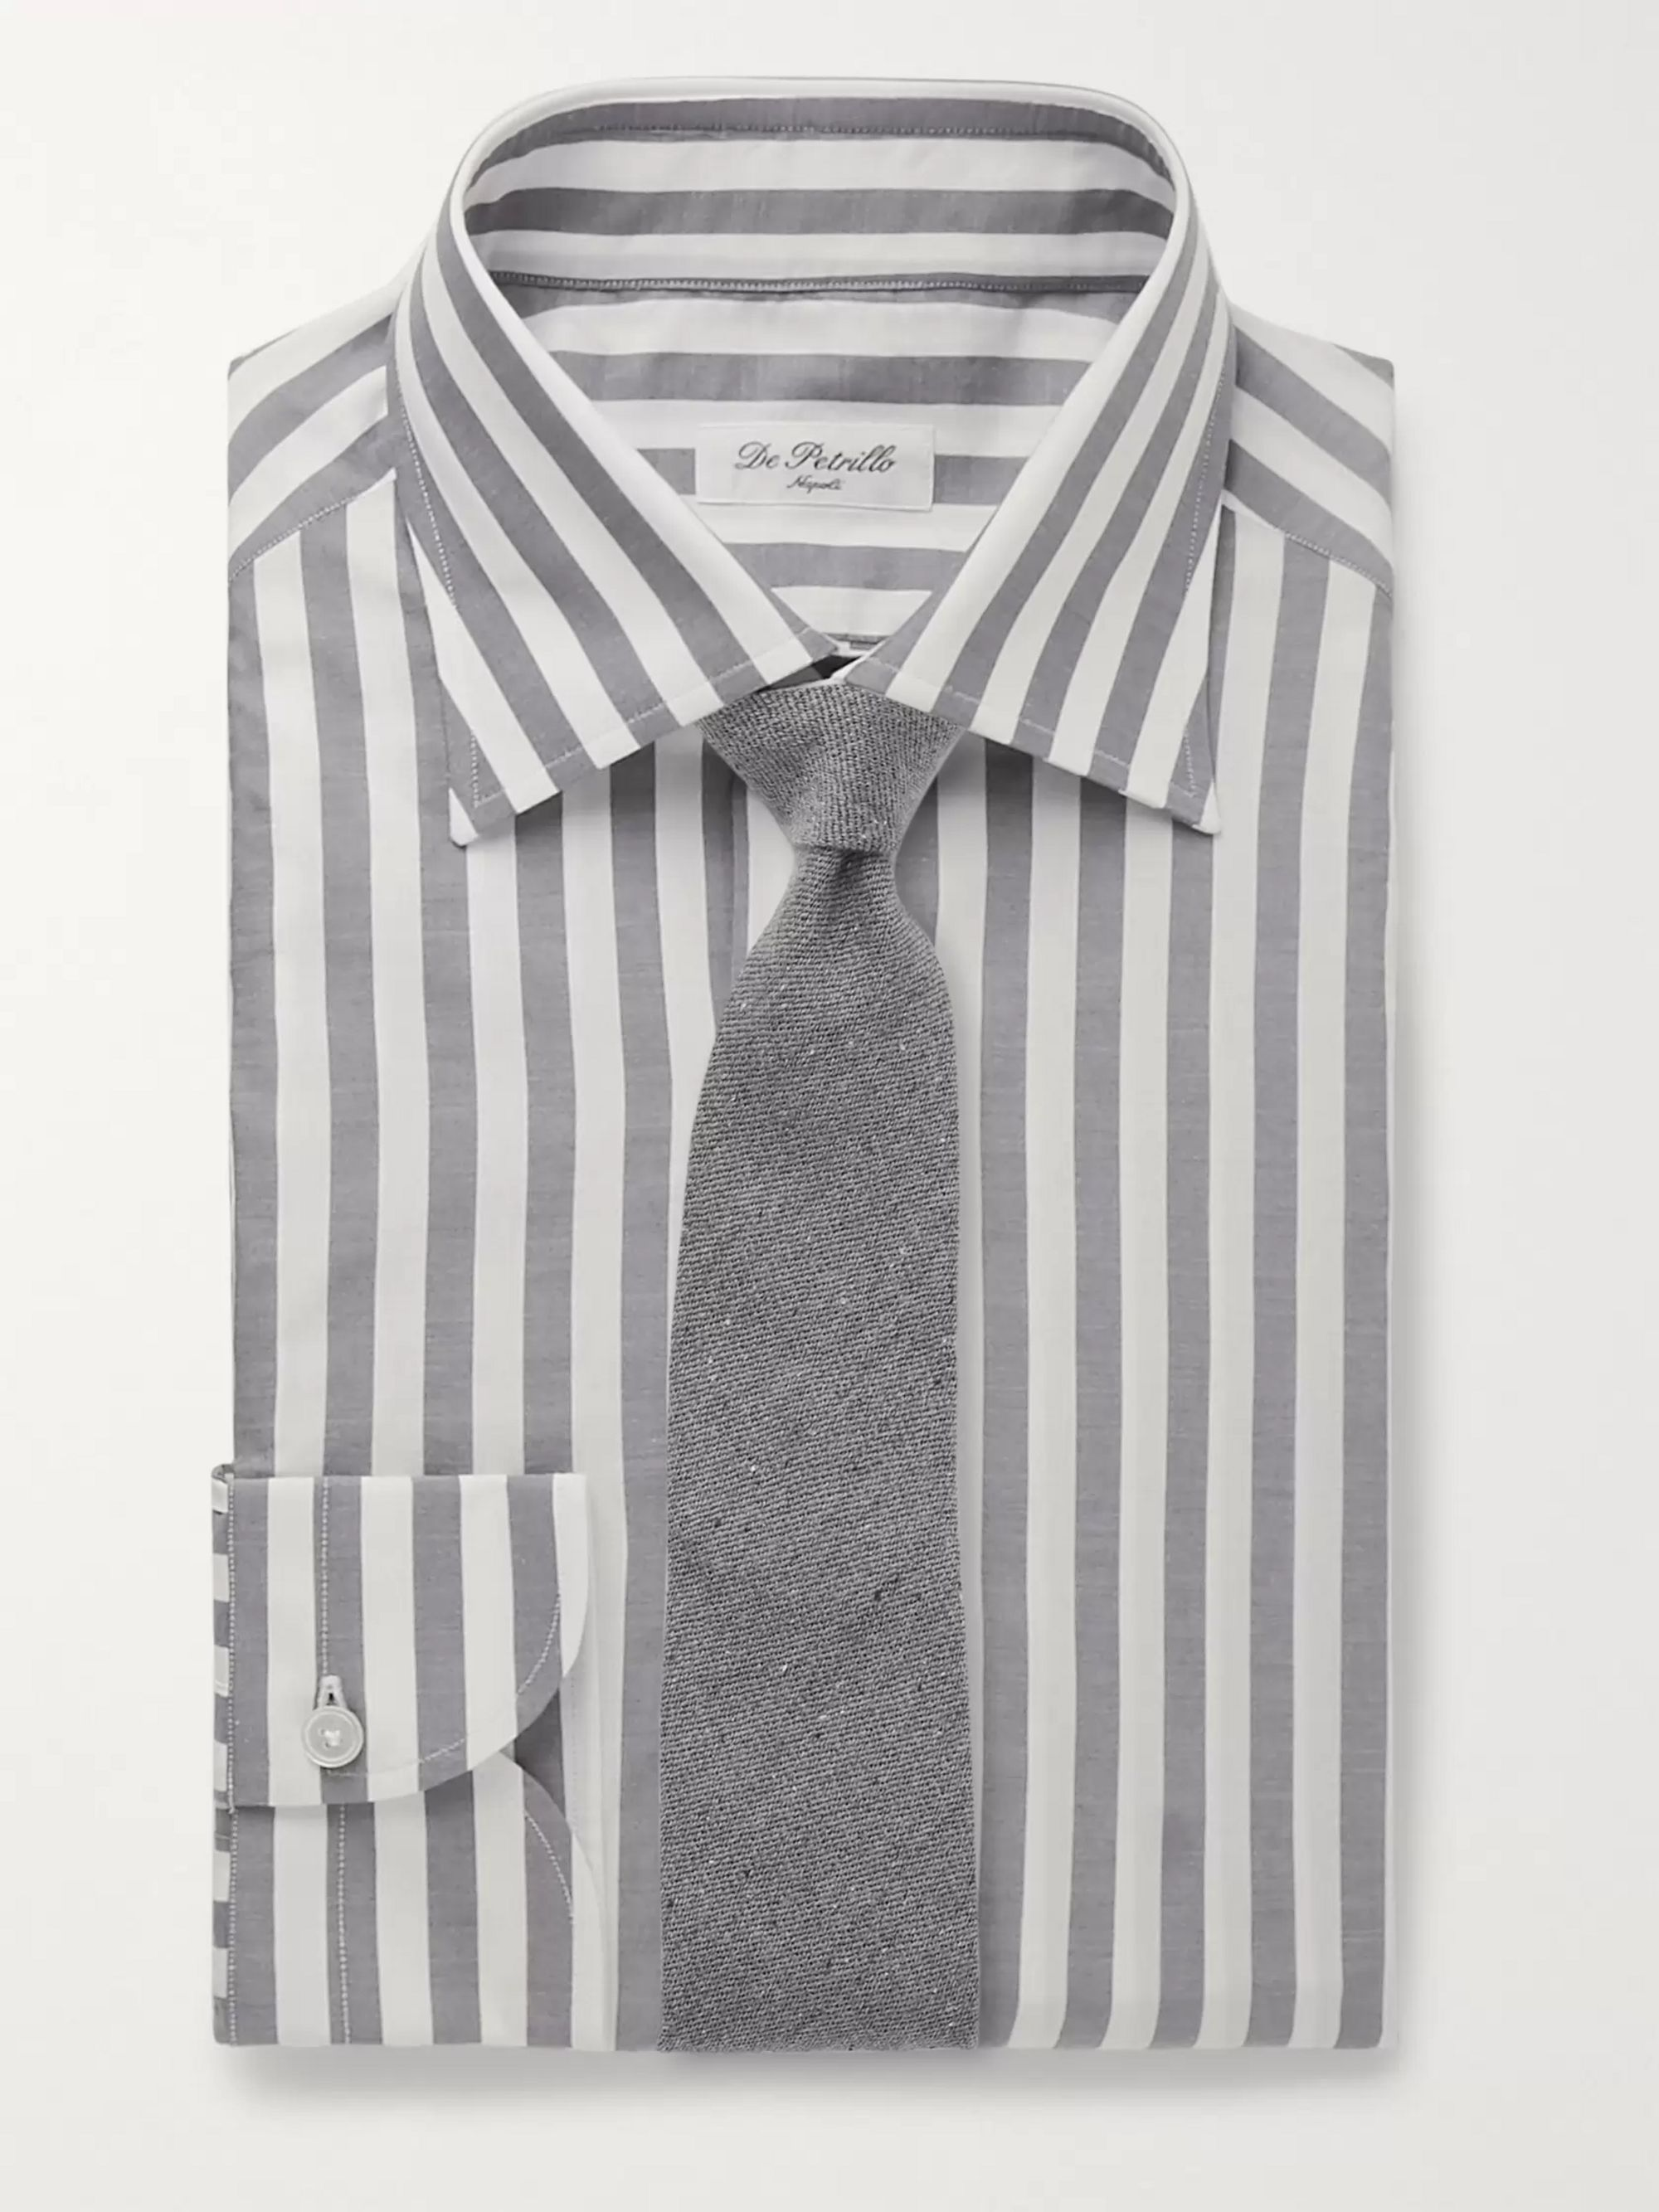 De Petrillo Fortino Slim-Fit Striped Cotton Shirt